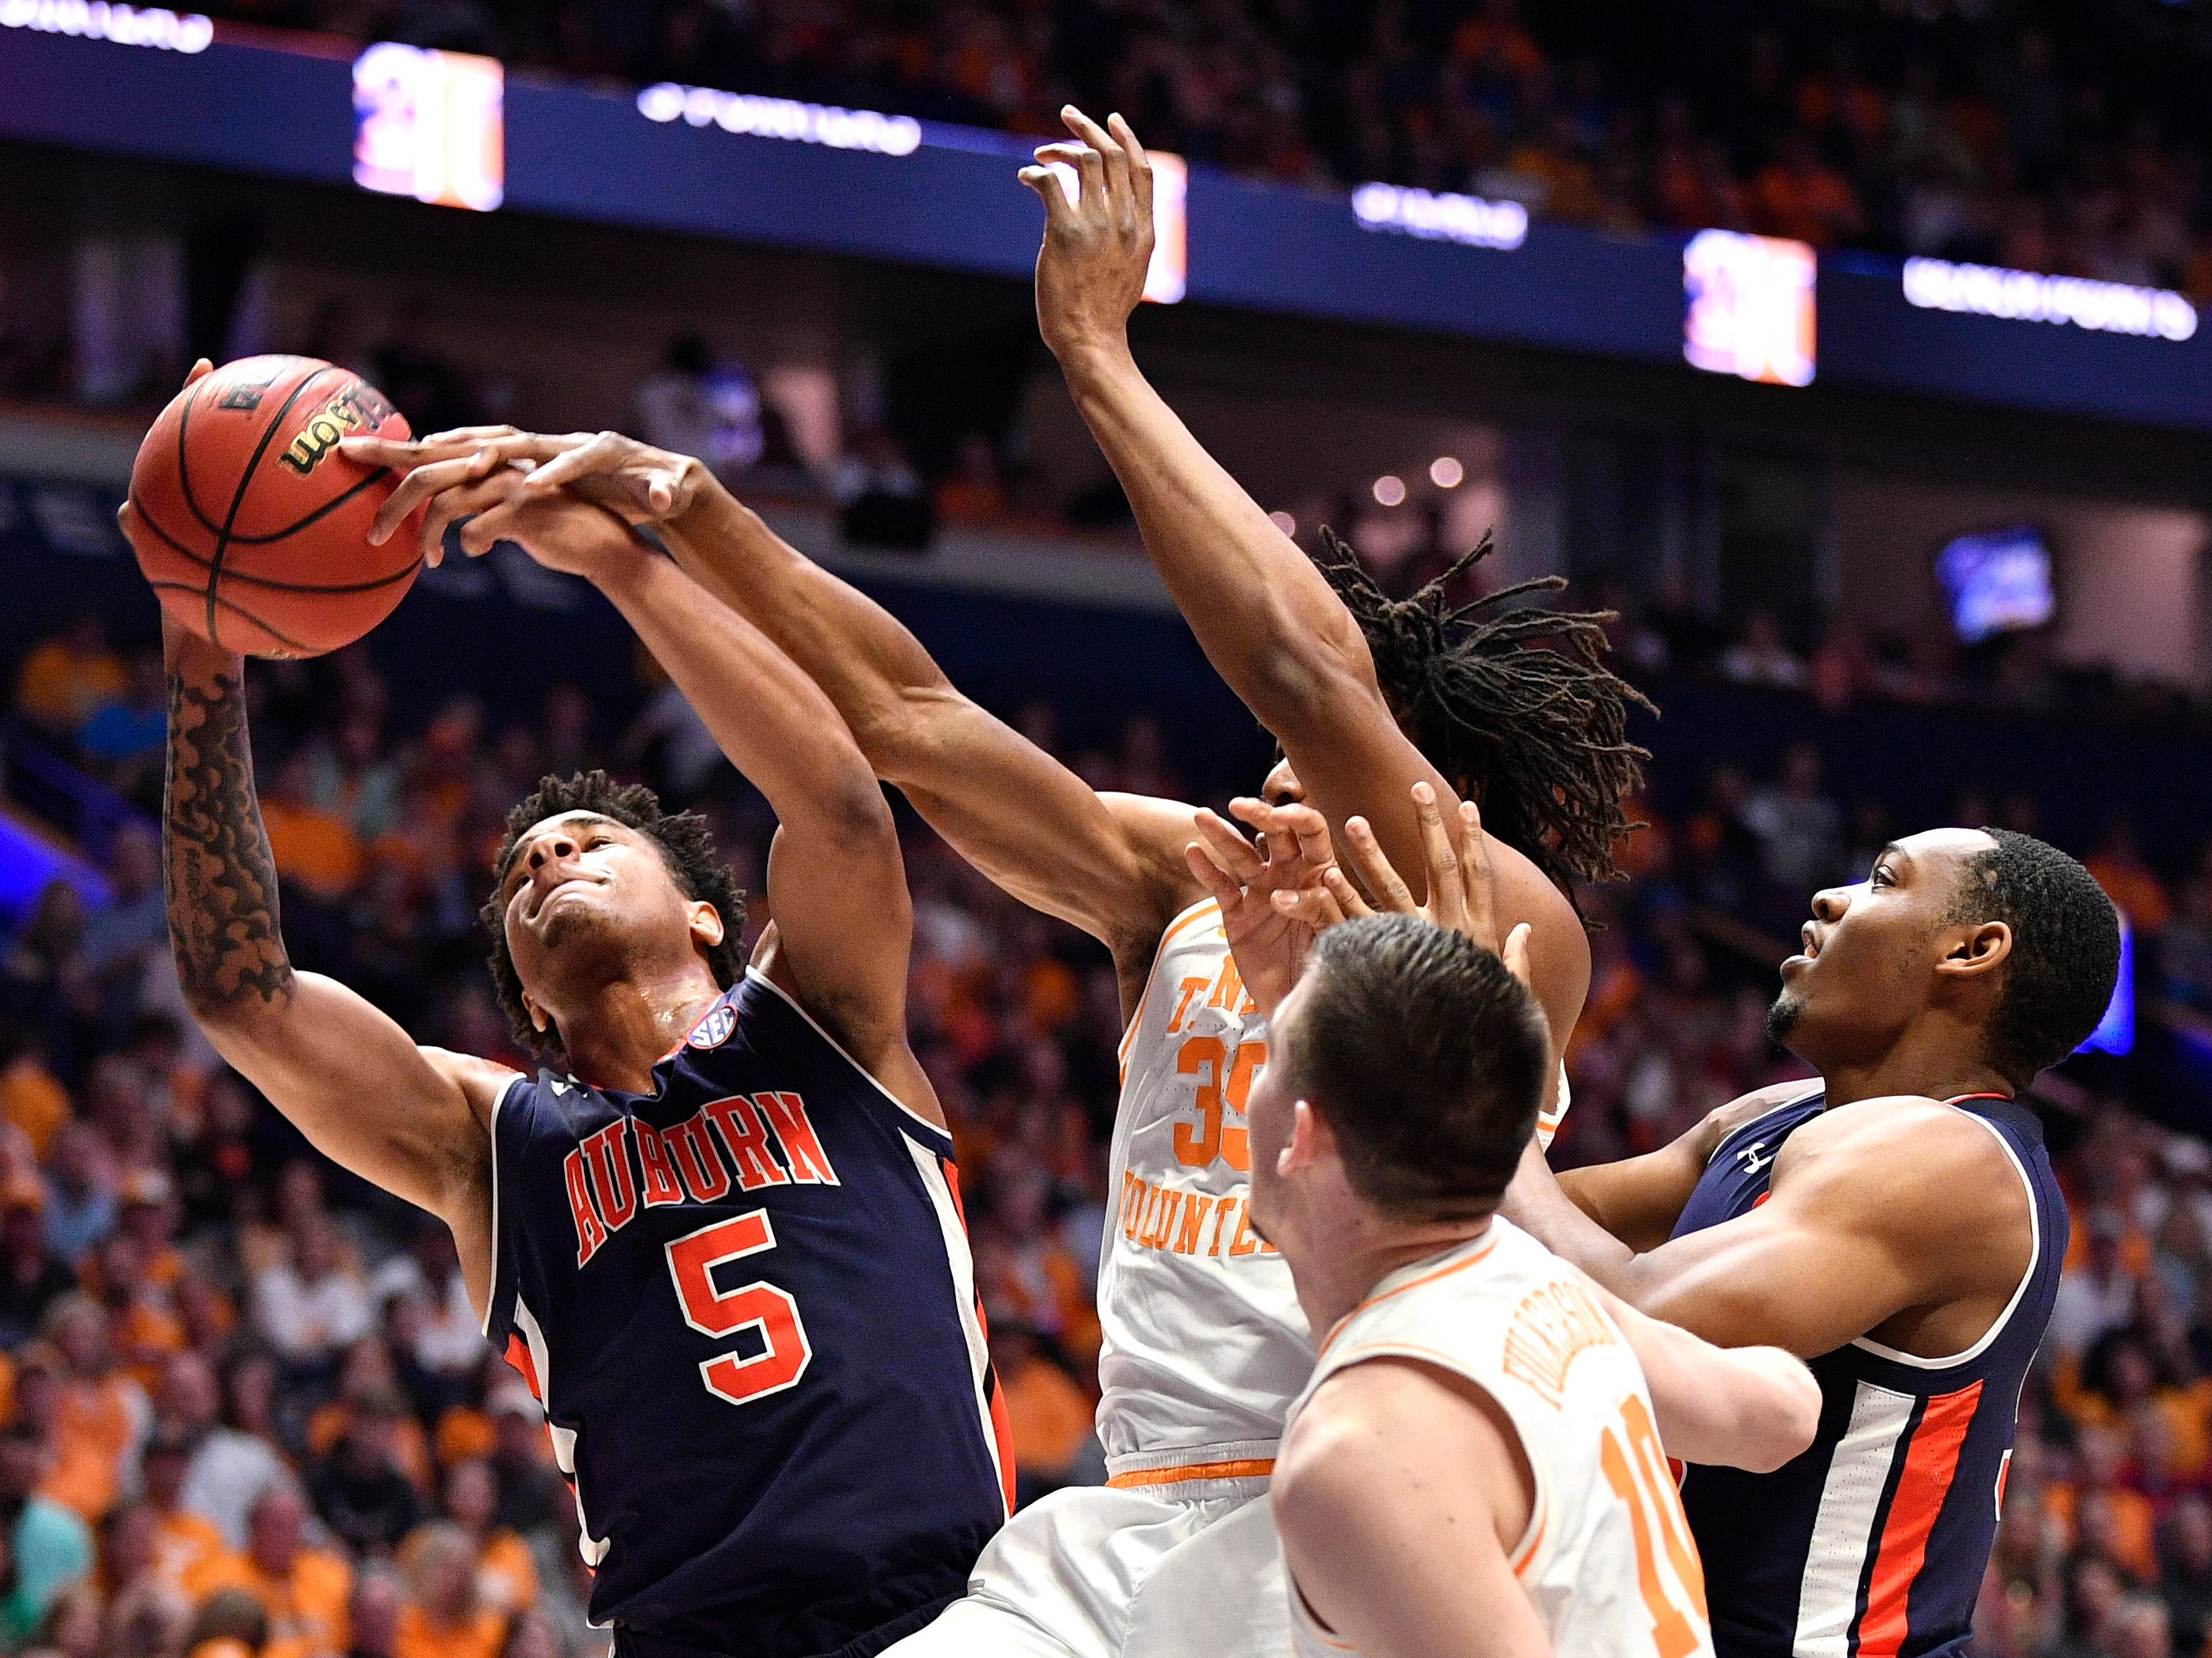 Auburn forward Chuma Okeke (5) comes down with a rebound defended by Tennessee guard/forward Yves Pons (35) during the first half of the SEC Men's Basketball Tournament championship game at Bridgestone Arena in Nashville, Tenn., Sunday, March 17, 2019.